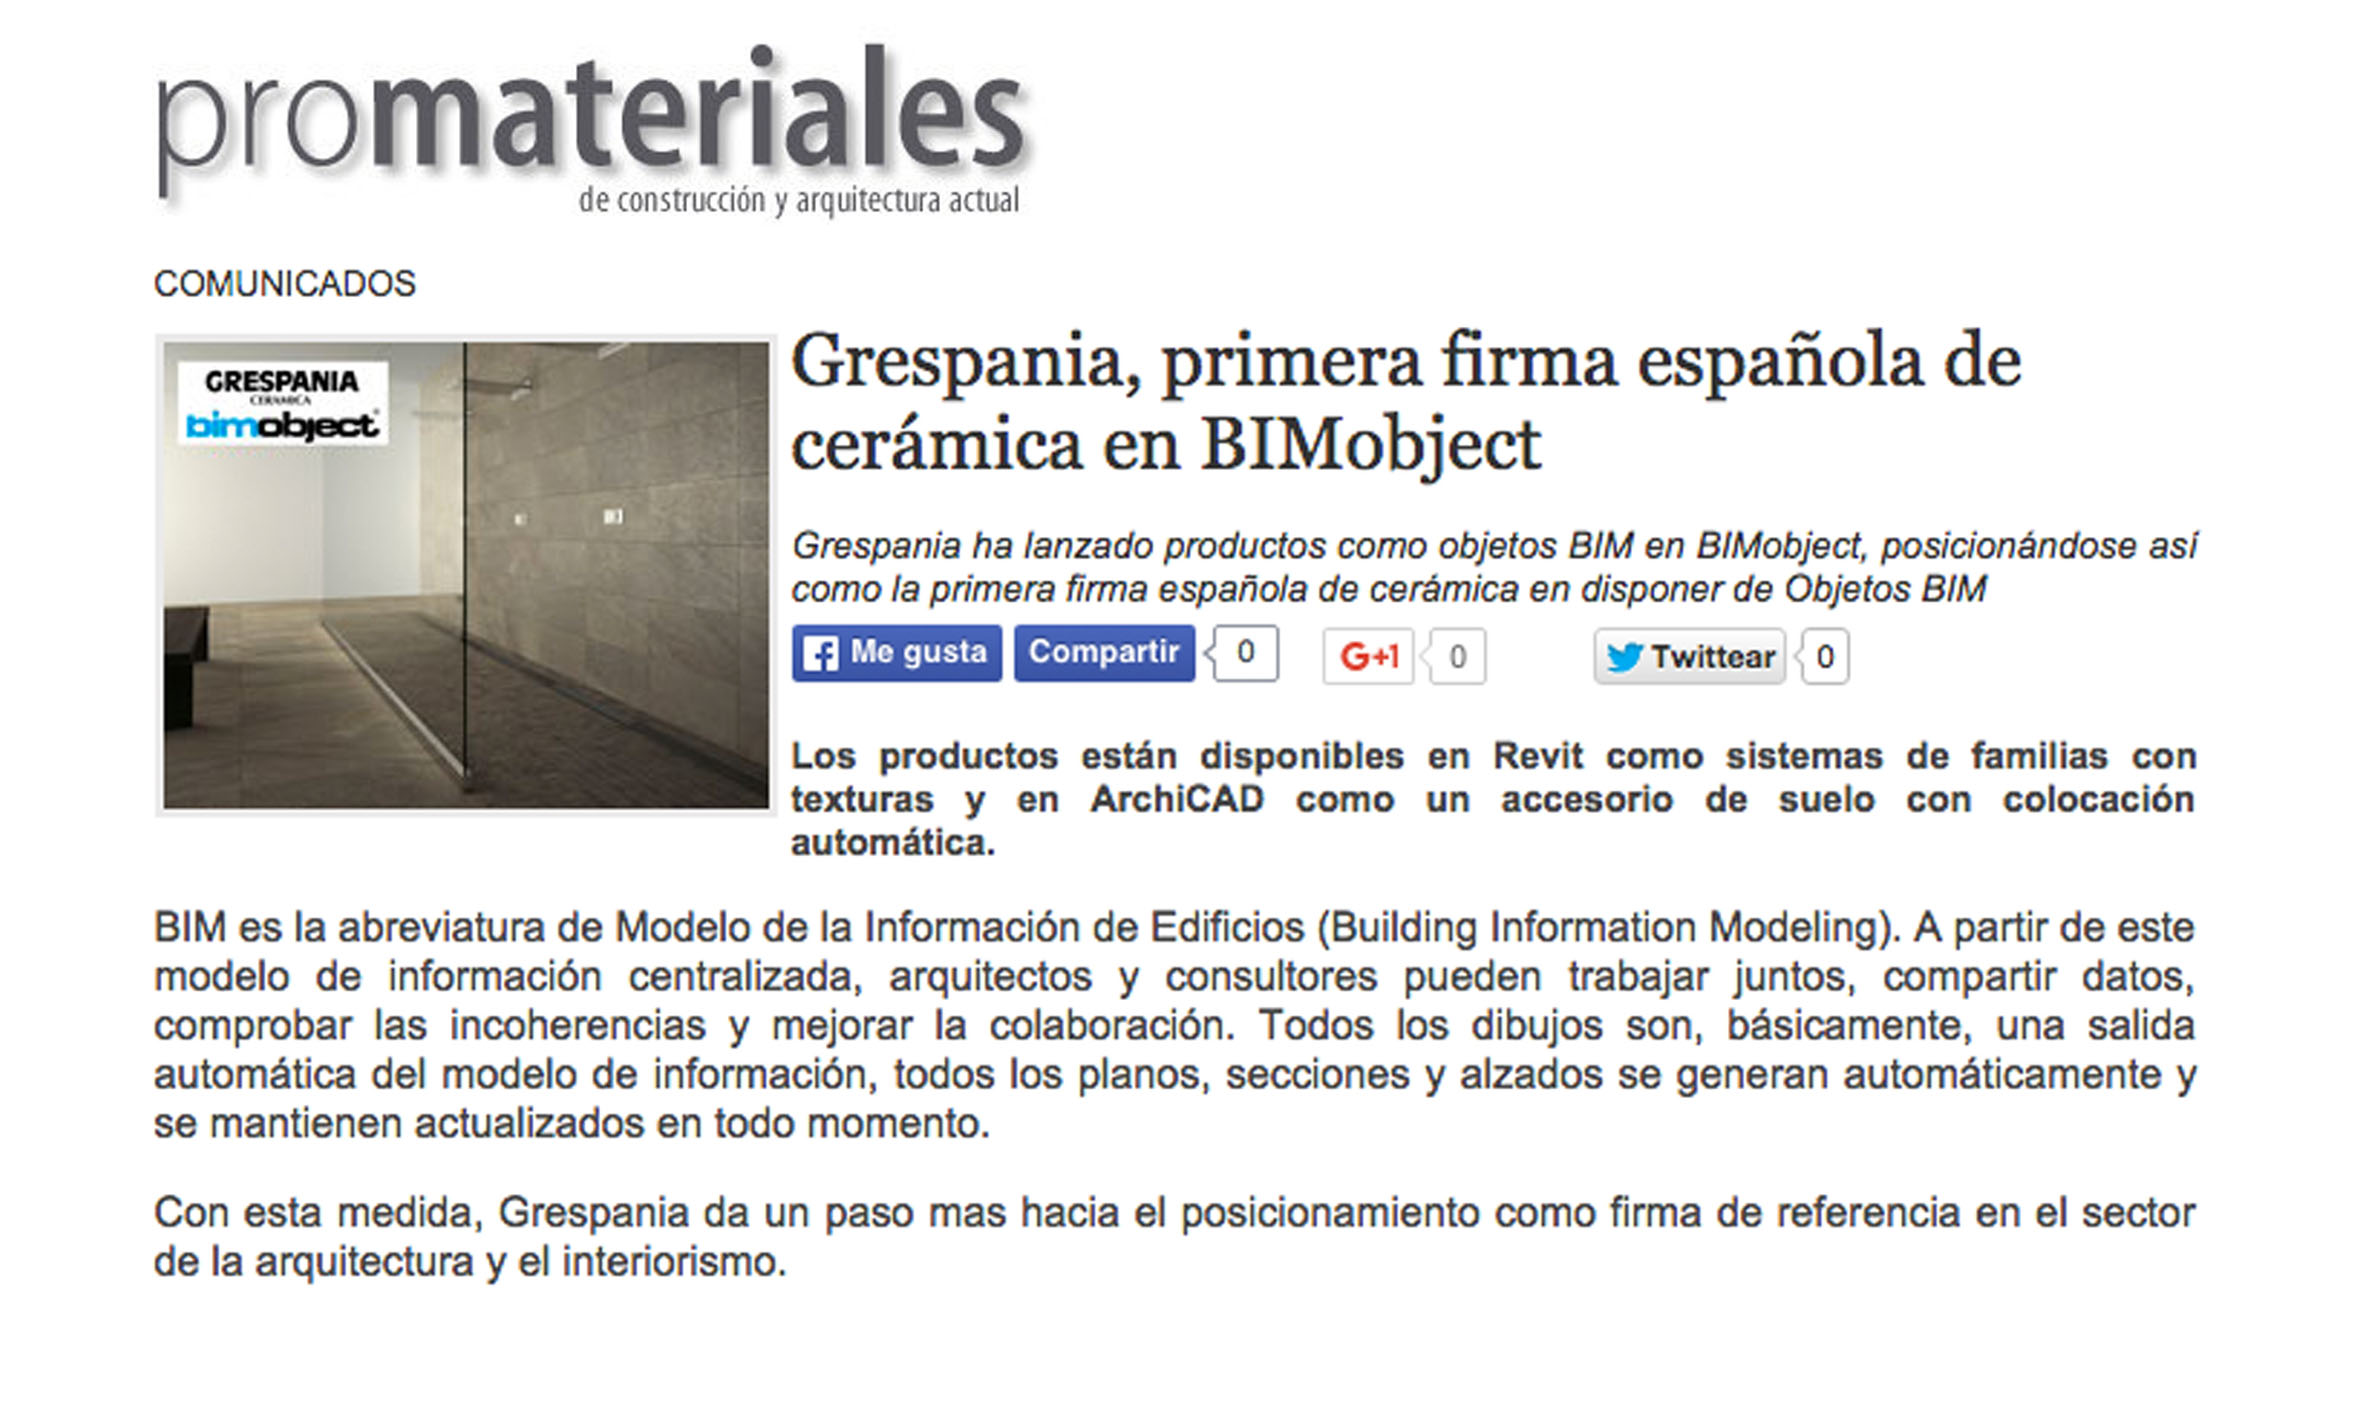 PROMATERIALES 18 Sept 2015 (WEB)